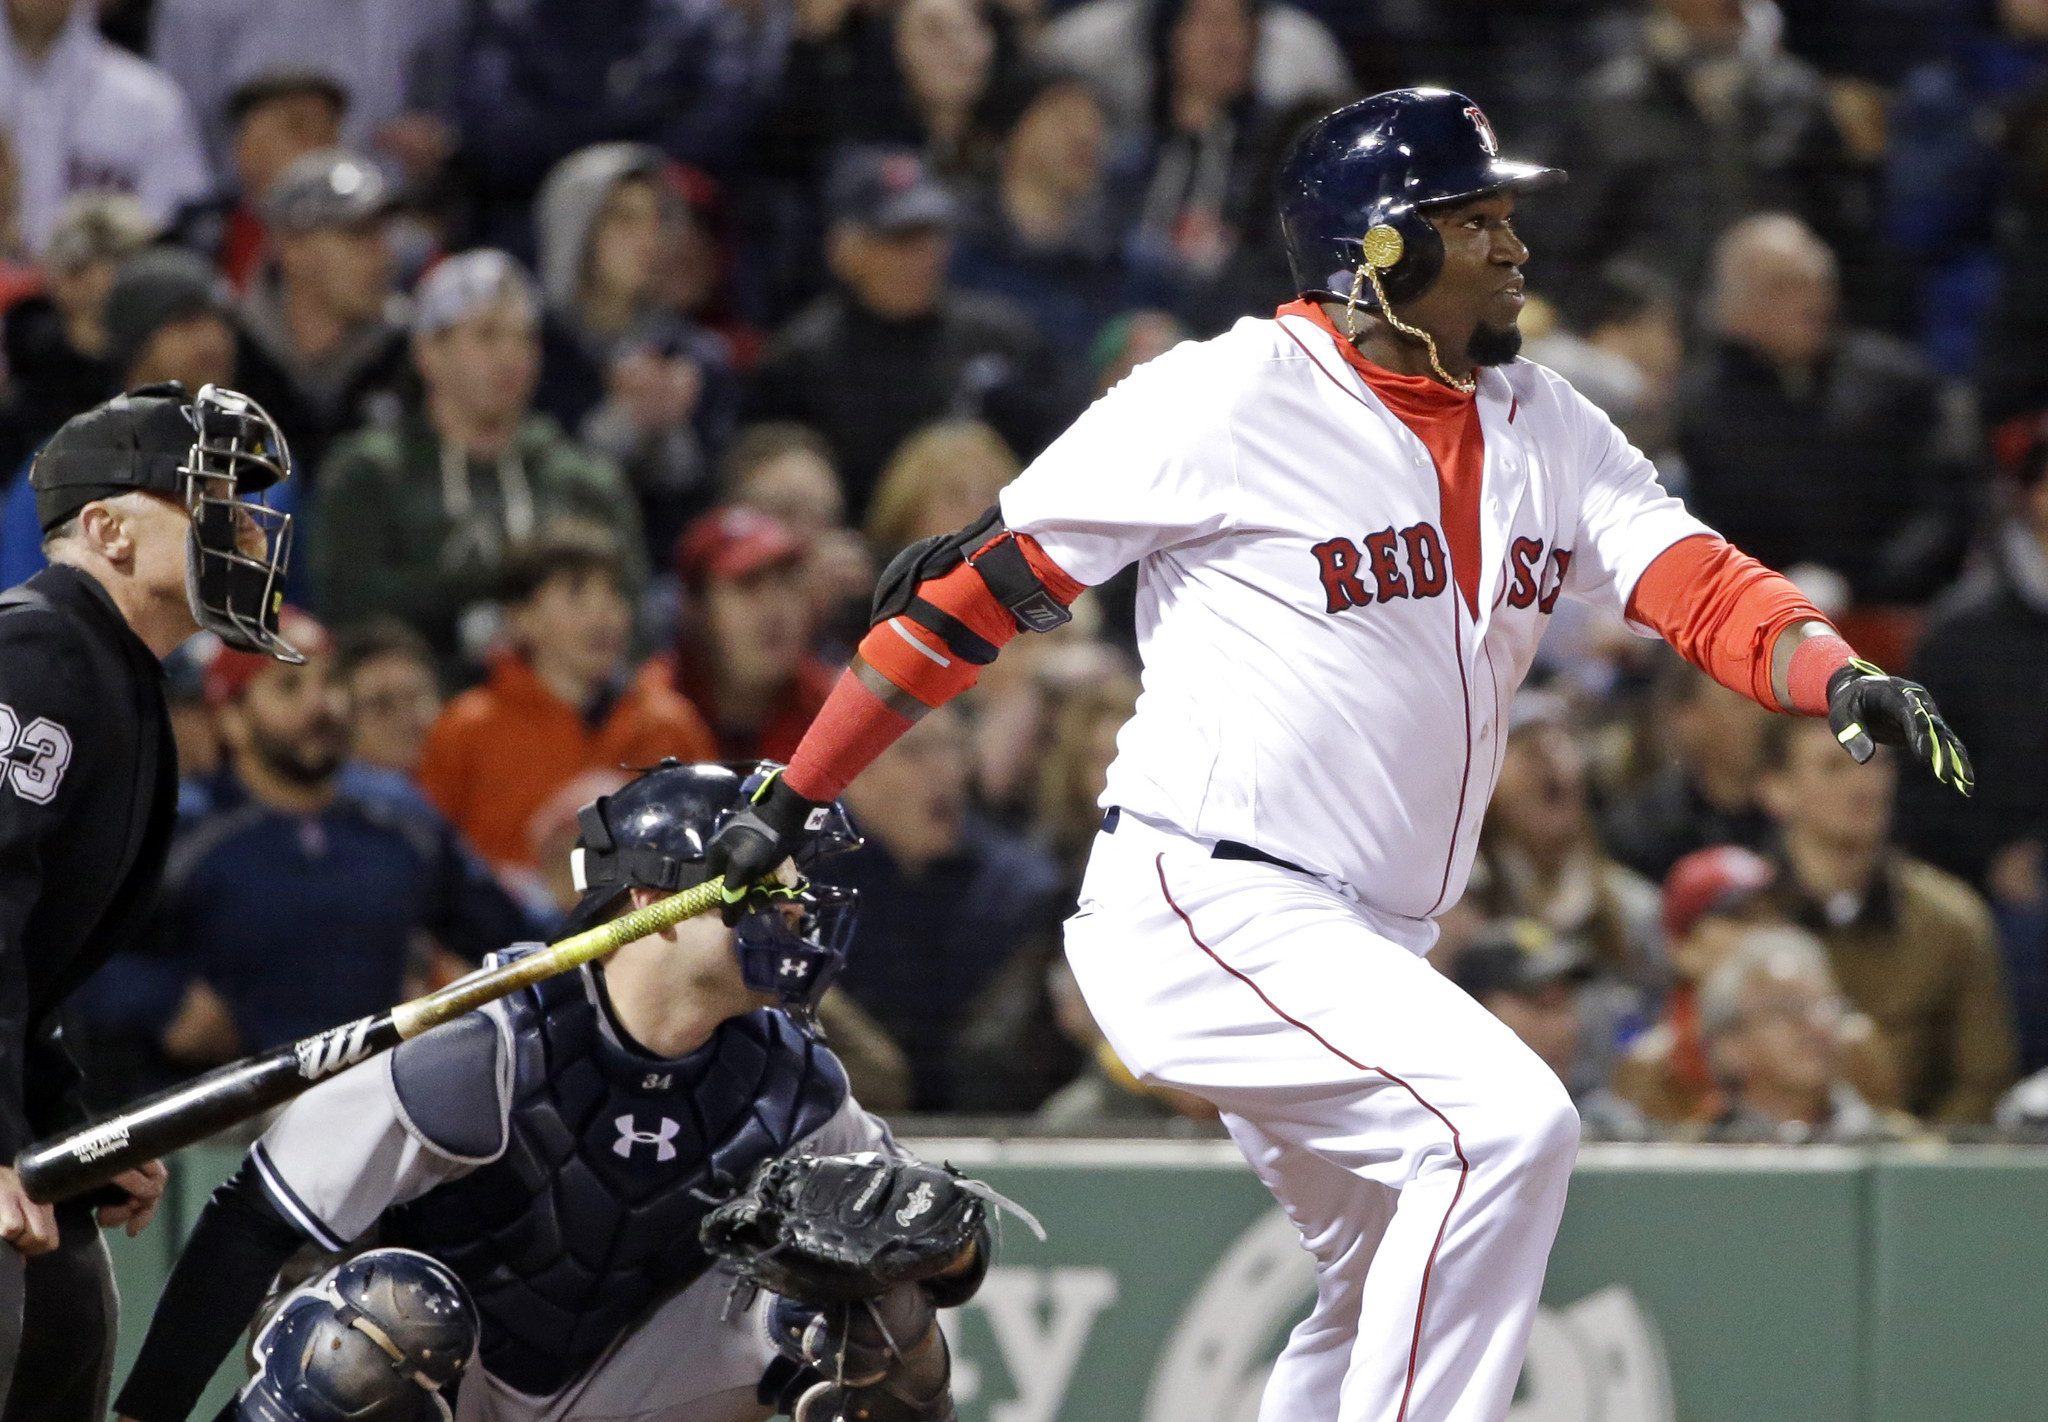 Hc-red-sox-yankees-game-0430-20160429